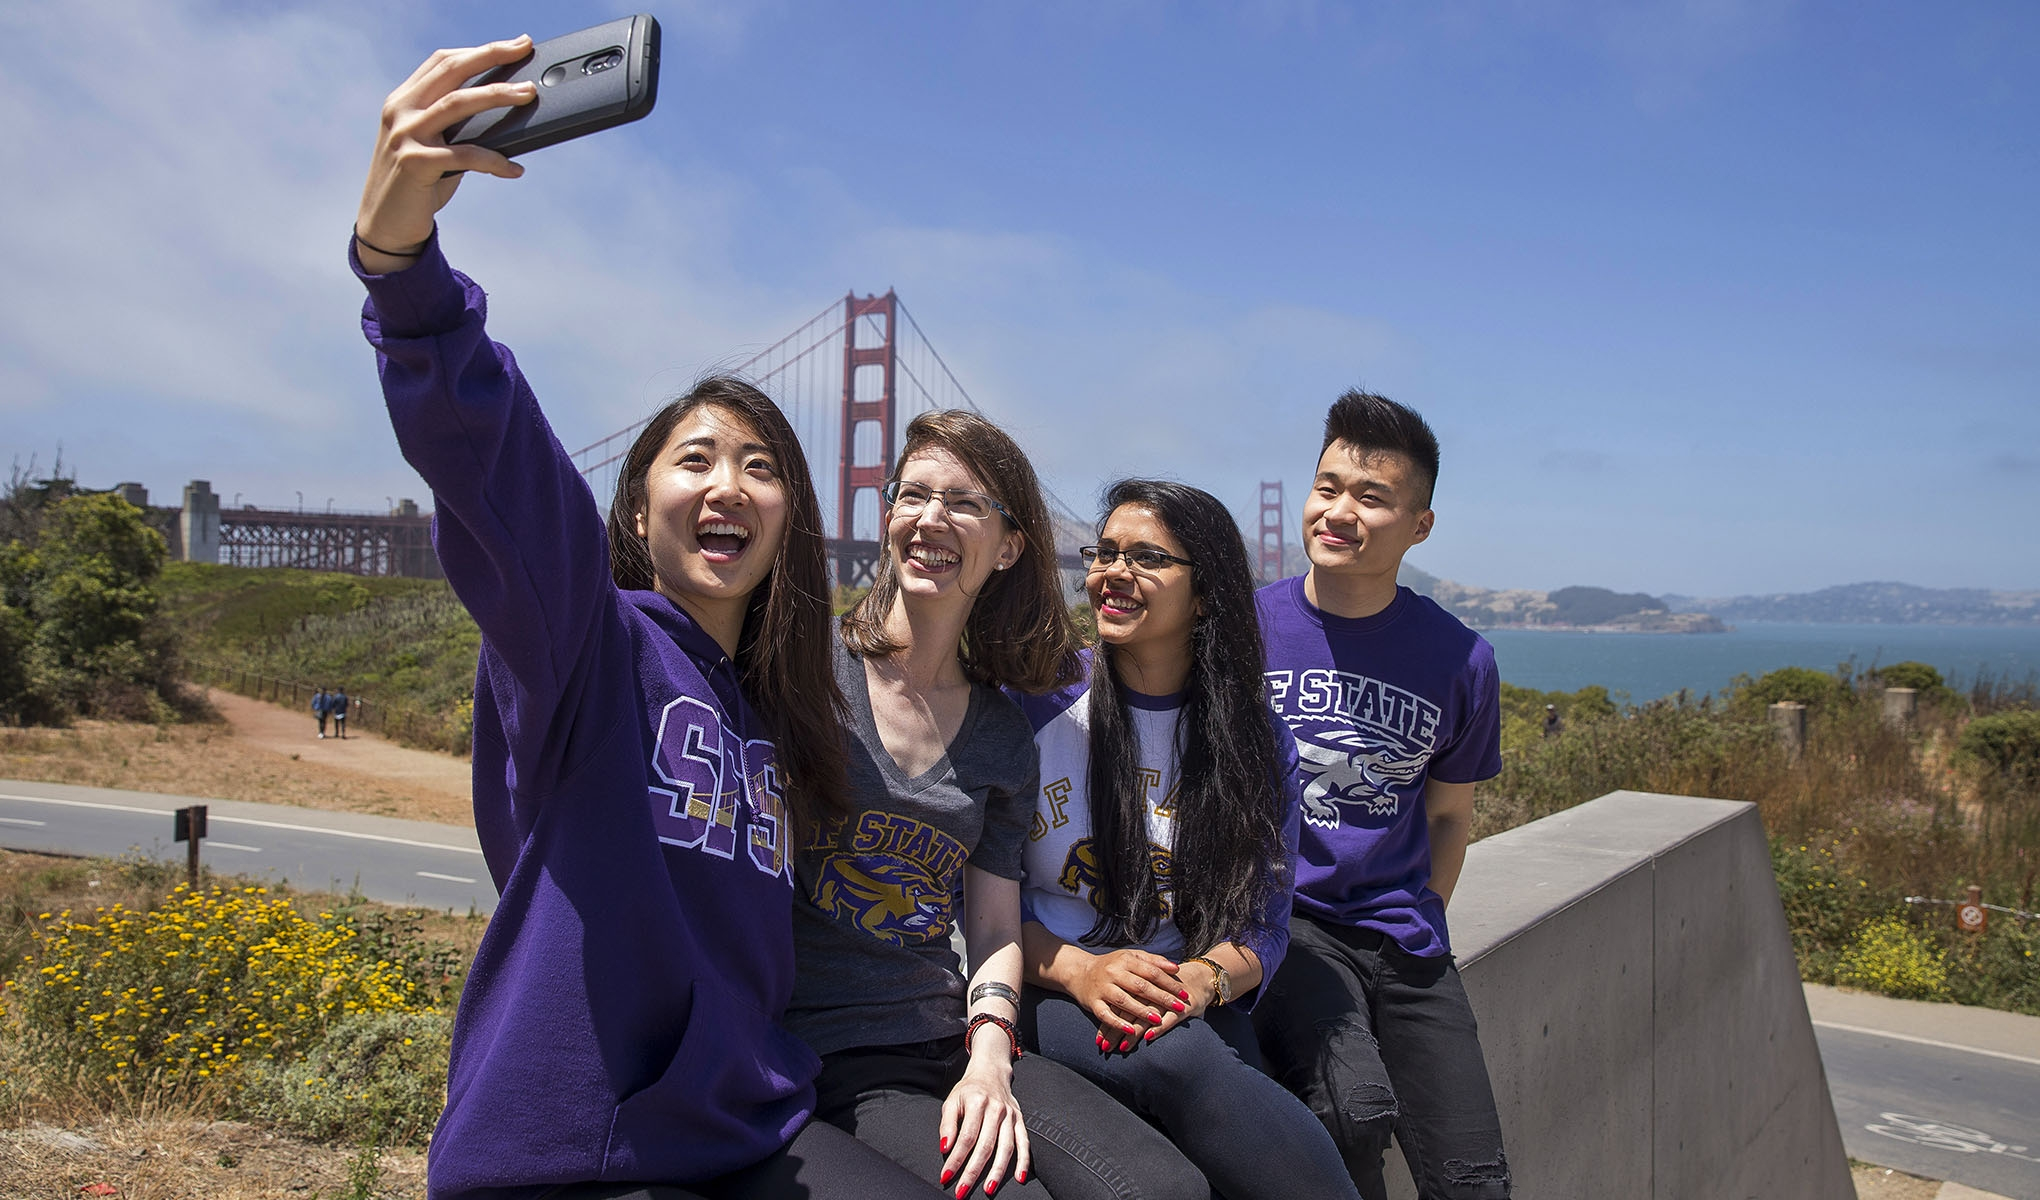 SFSU Future Students